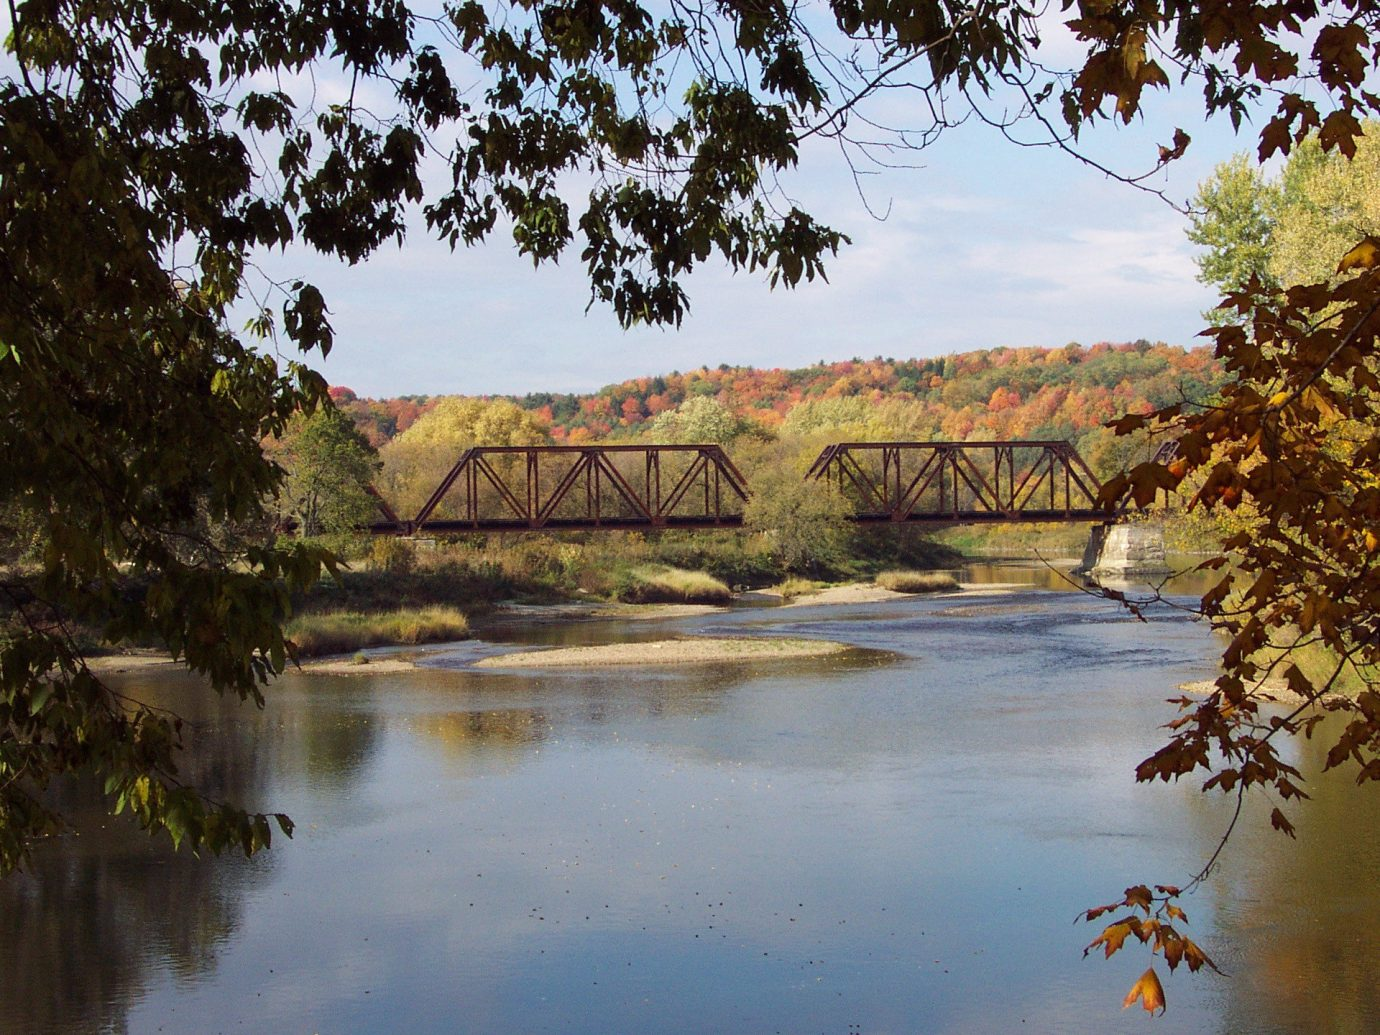 Trip Ideas tree outdoor water River reflection Nature leaf pond bank Lake wetland sky landscape bridge reservoir plant watercourse bayou fluvial landforms of streams autumn branch floodplain grass riparian zone creek traveling surrounded bushes wooded